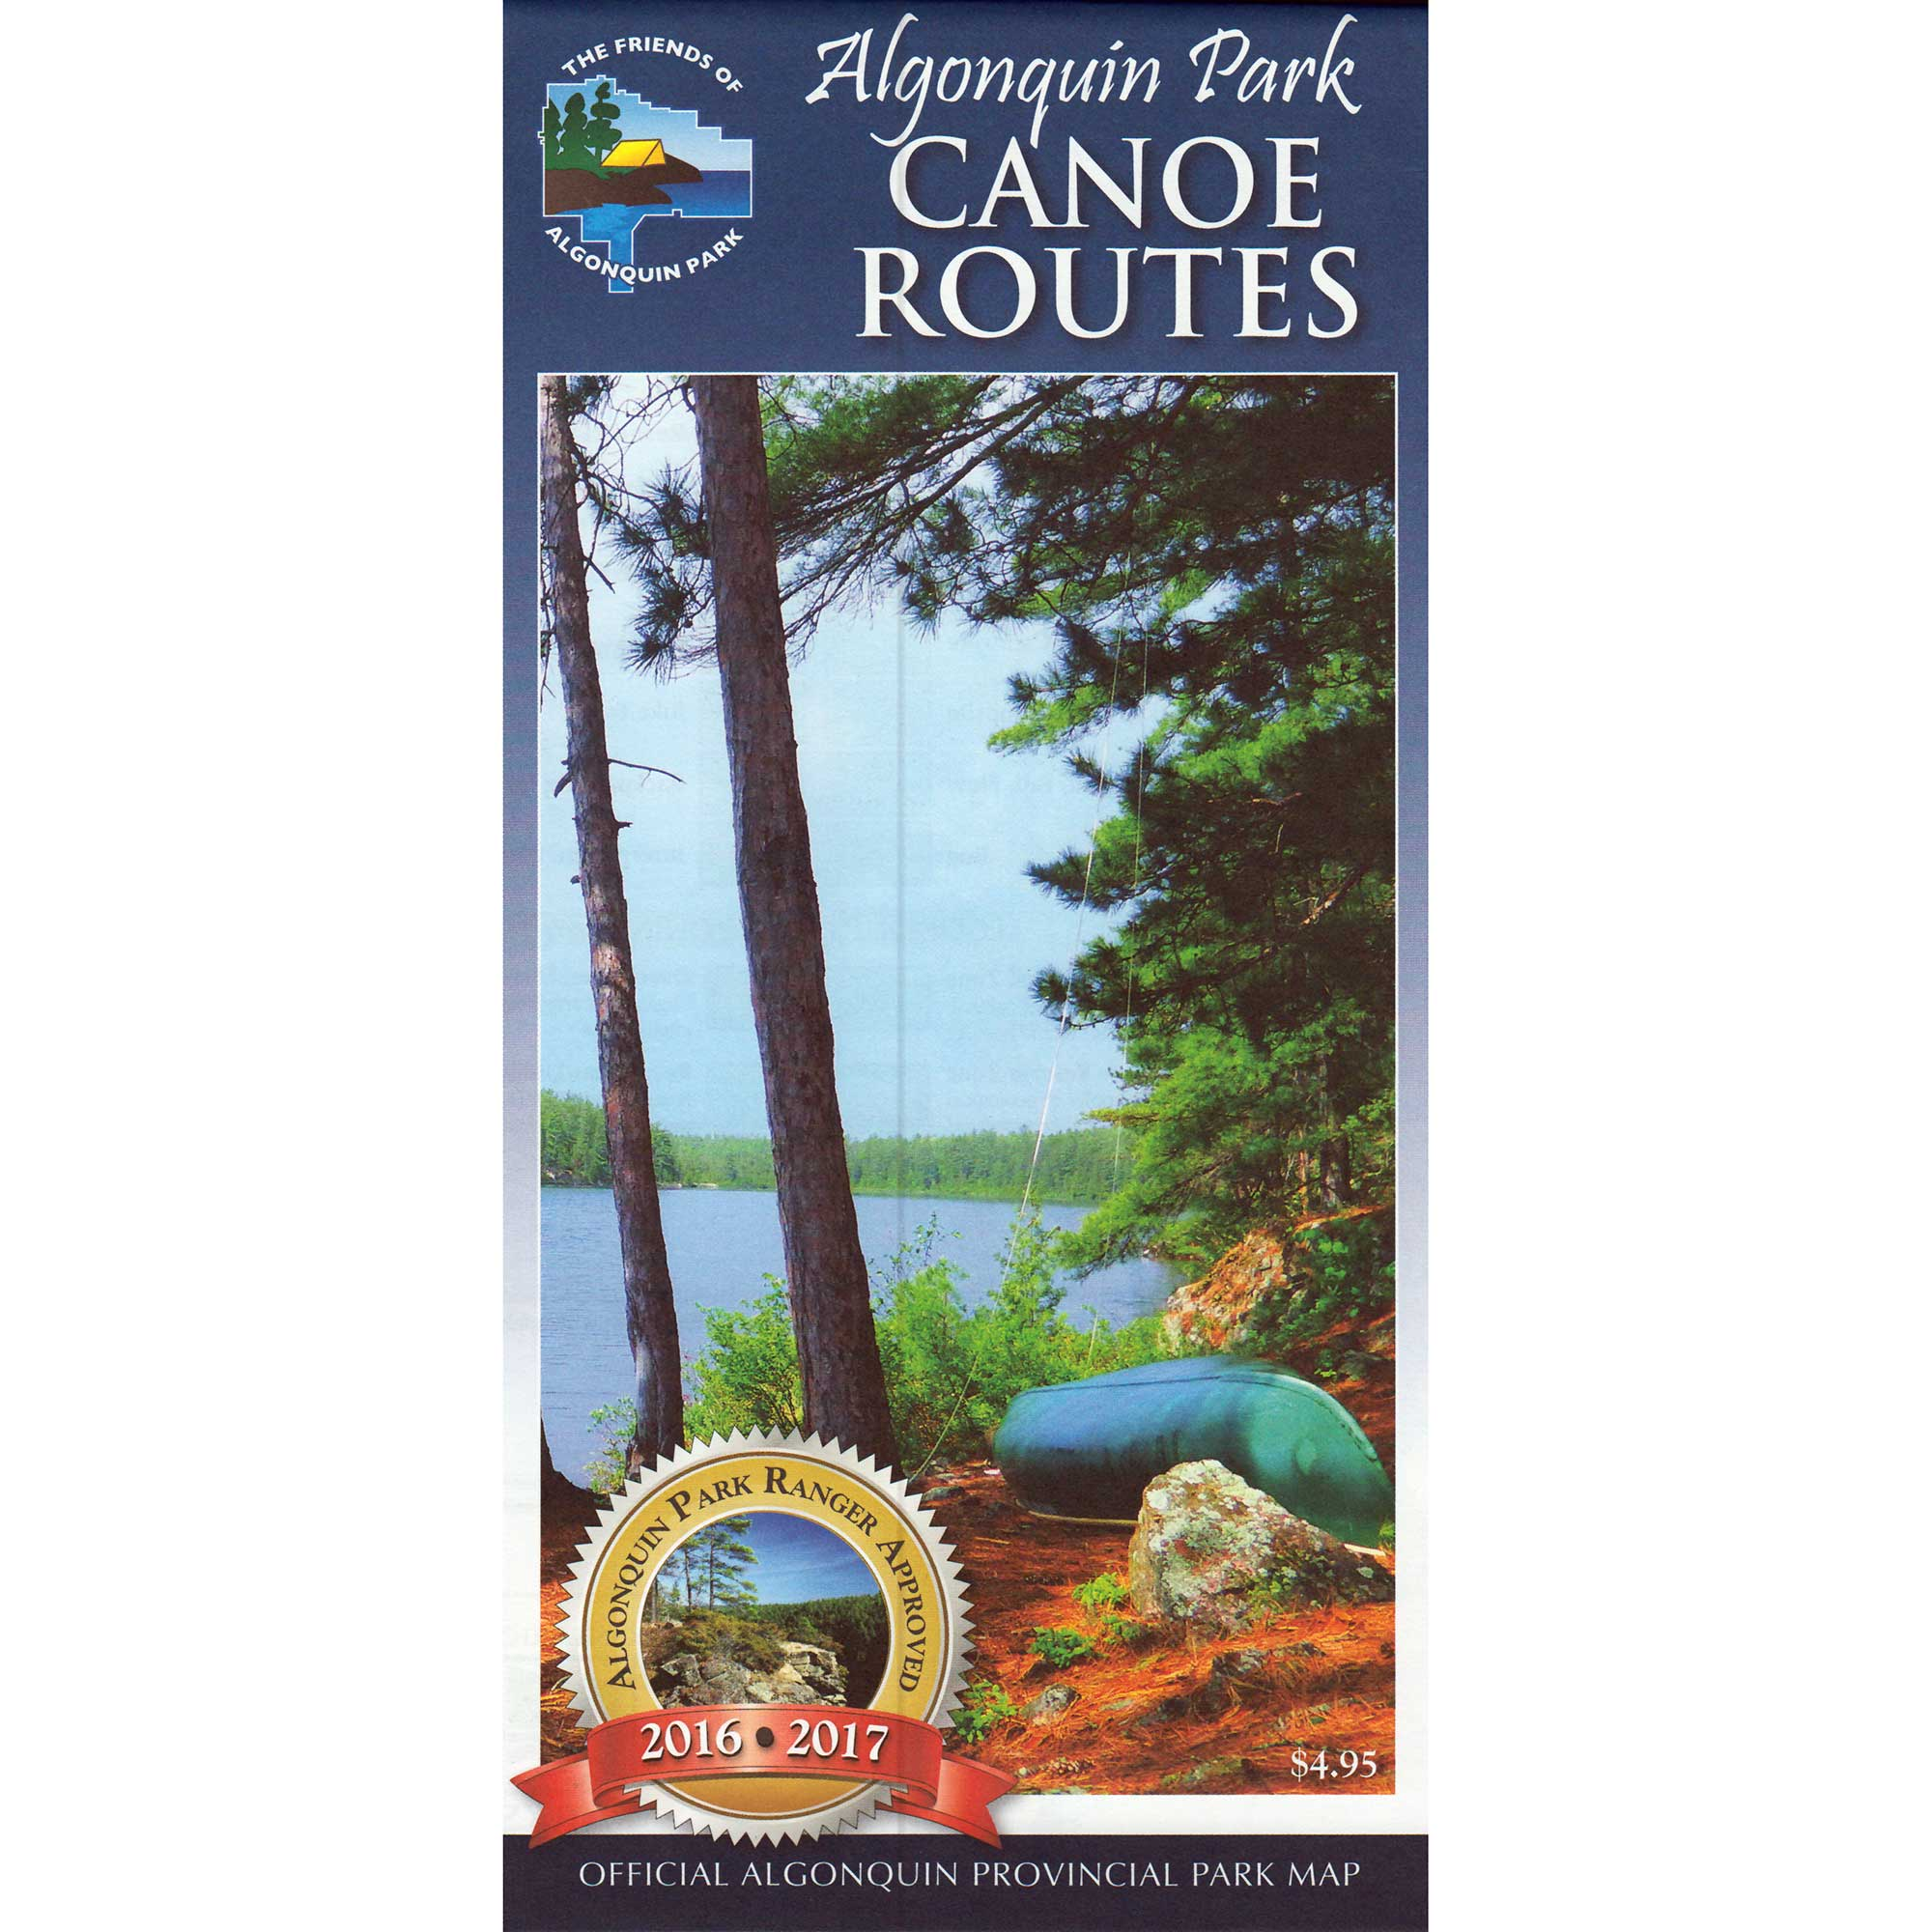 Algonquin Park Canoe Route Map 2016-2017